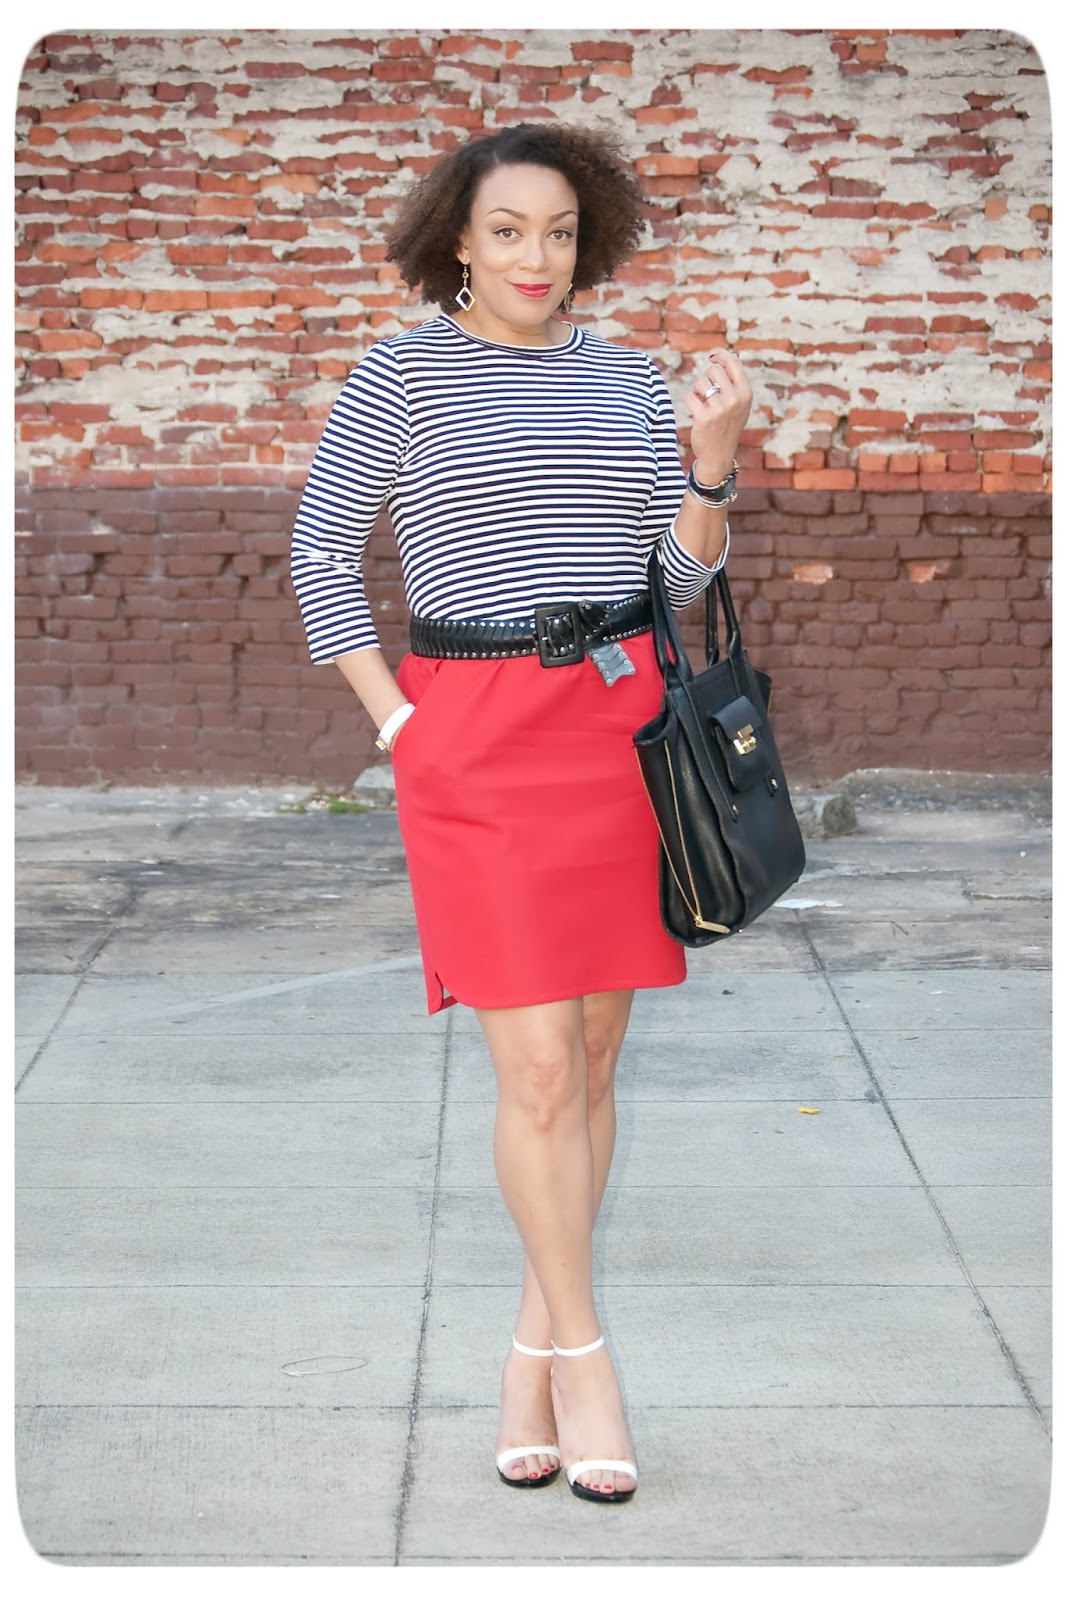 Sporty Chic Separates made from Mood Fabrics -- Erica B's DIY Style!